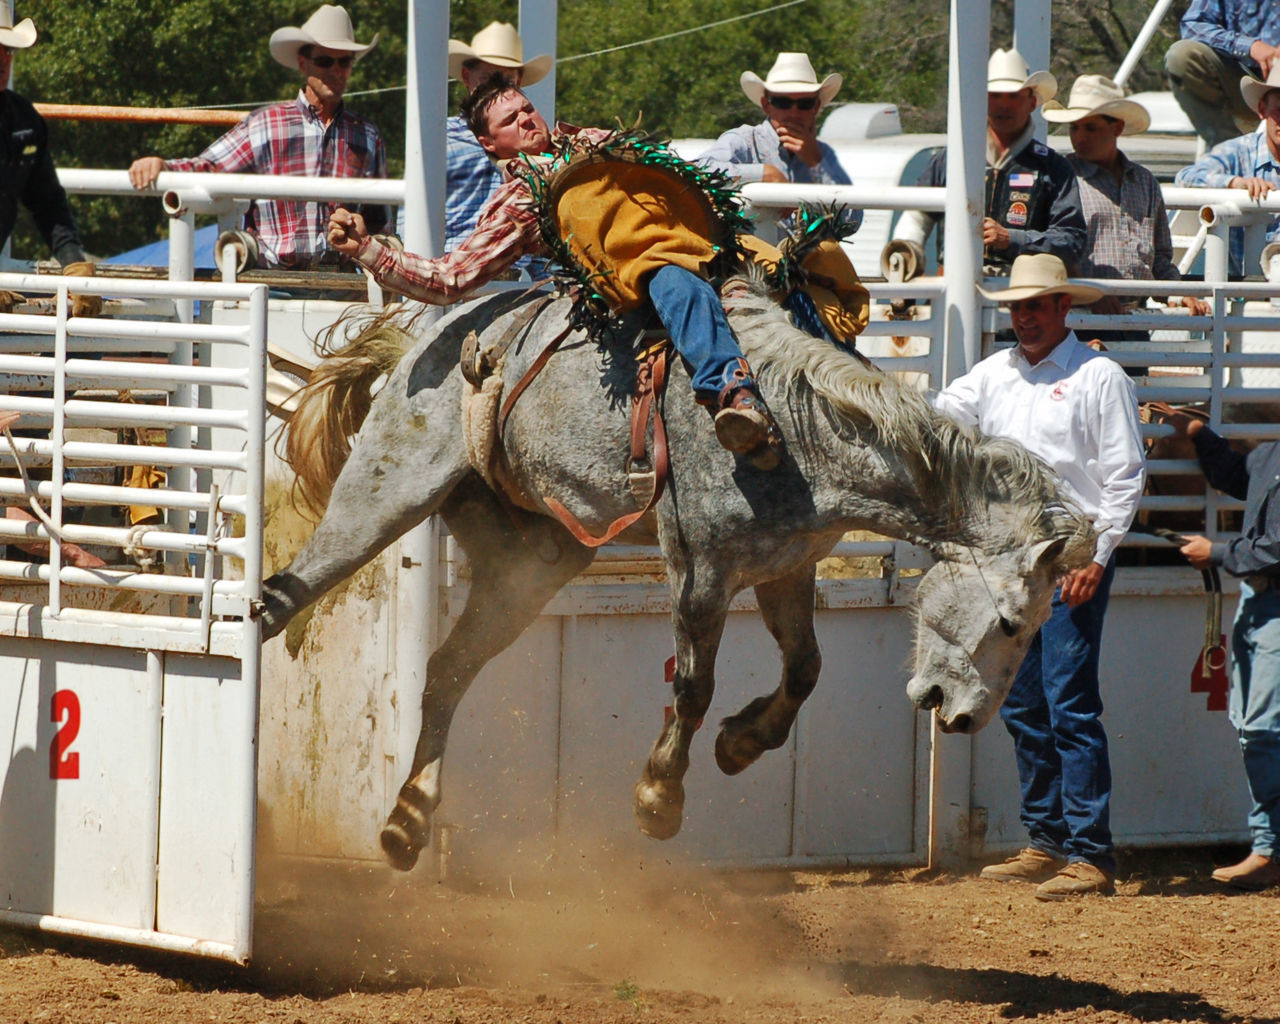 Out of the Chute Adult Bronco Bucking Bronco Chute Cowboy Day Domestic Animals Horse Horseback Riding Livestock Mammal Men Outdoors People Real People Riding